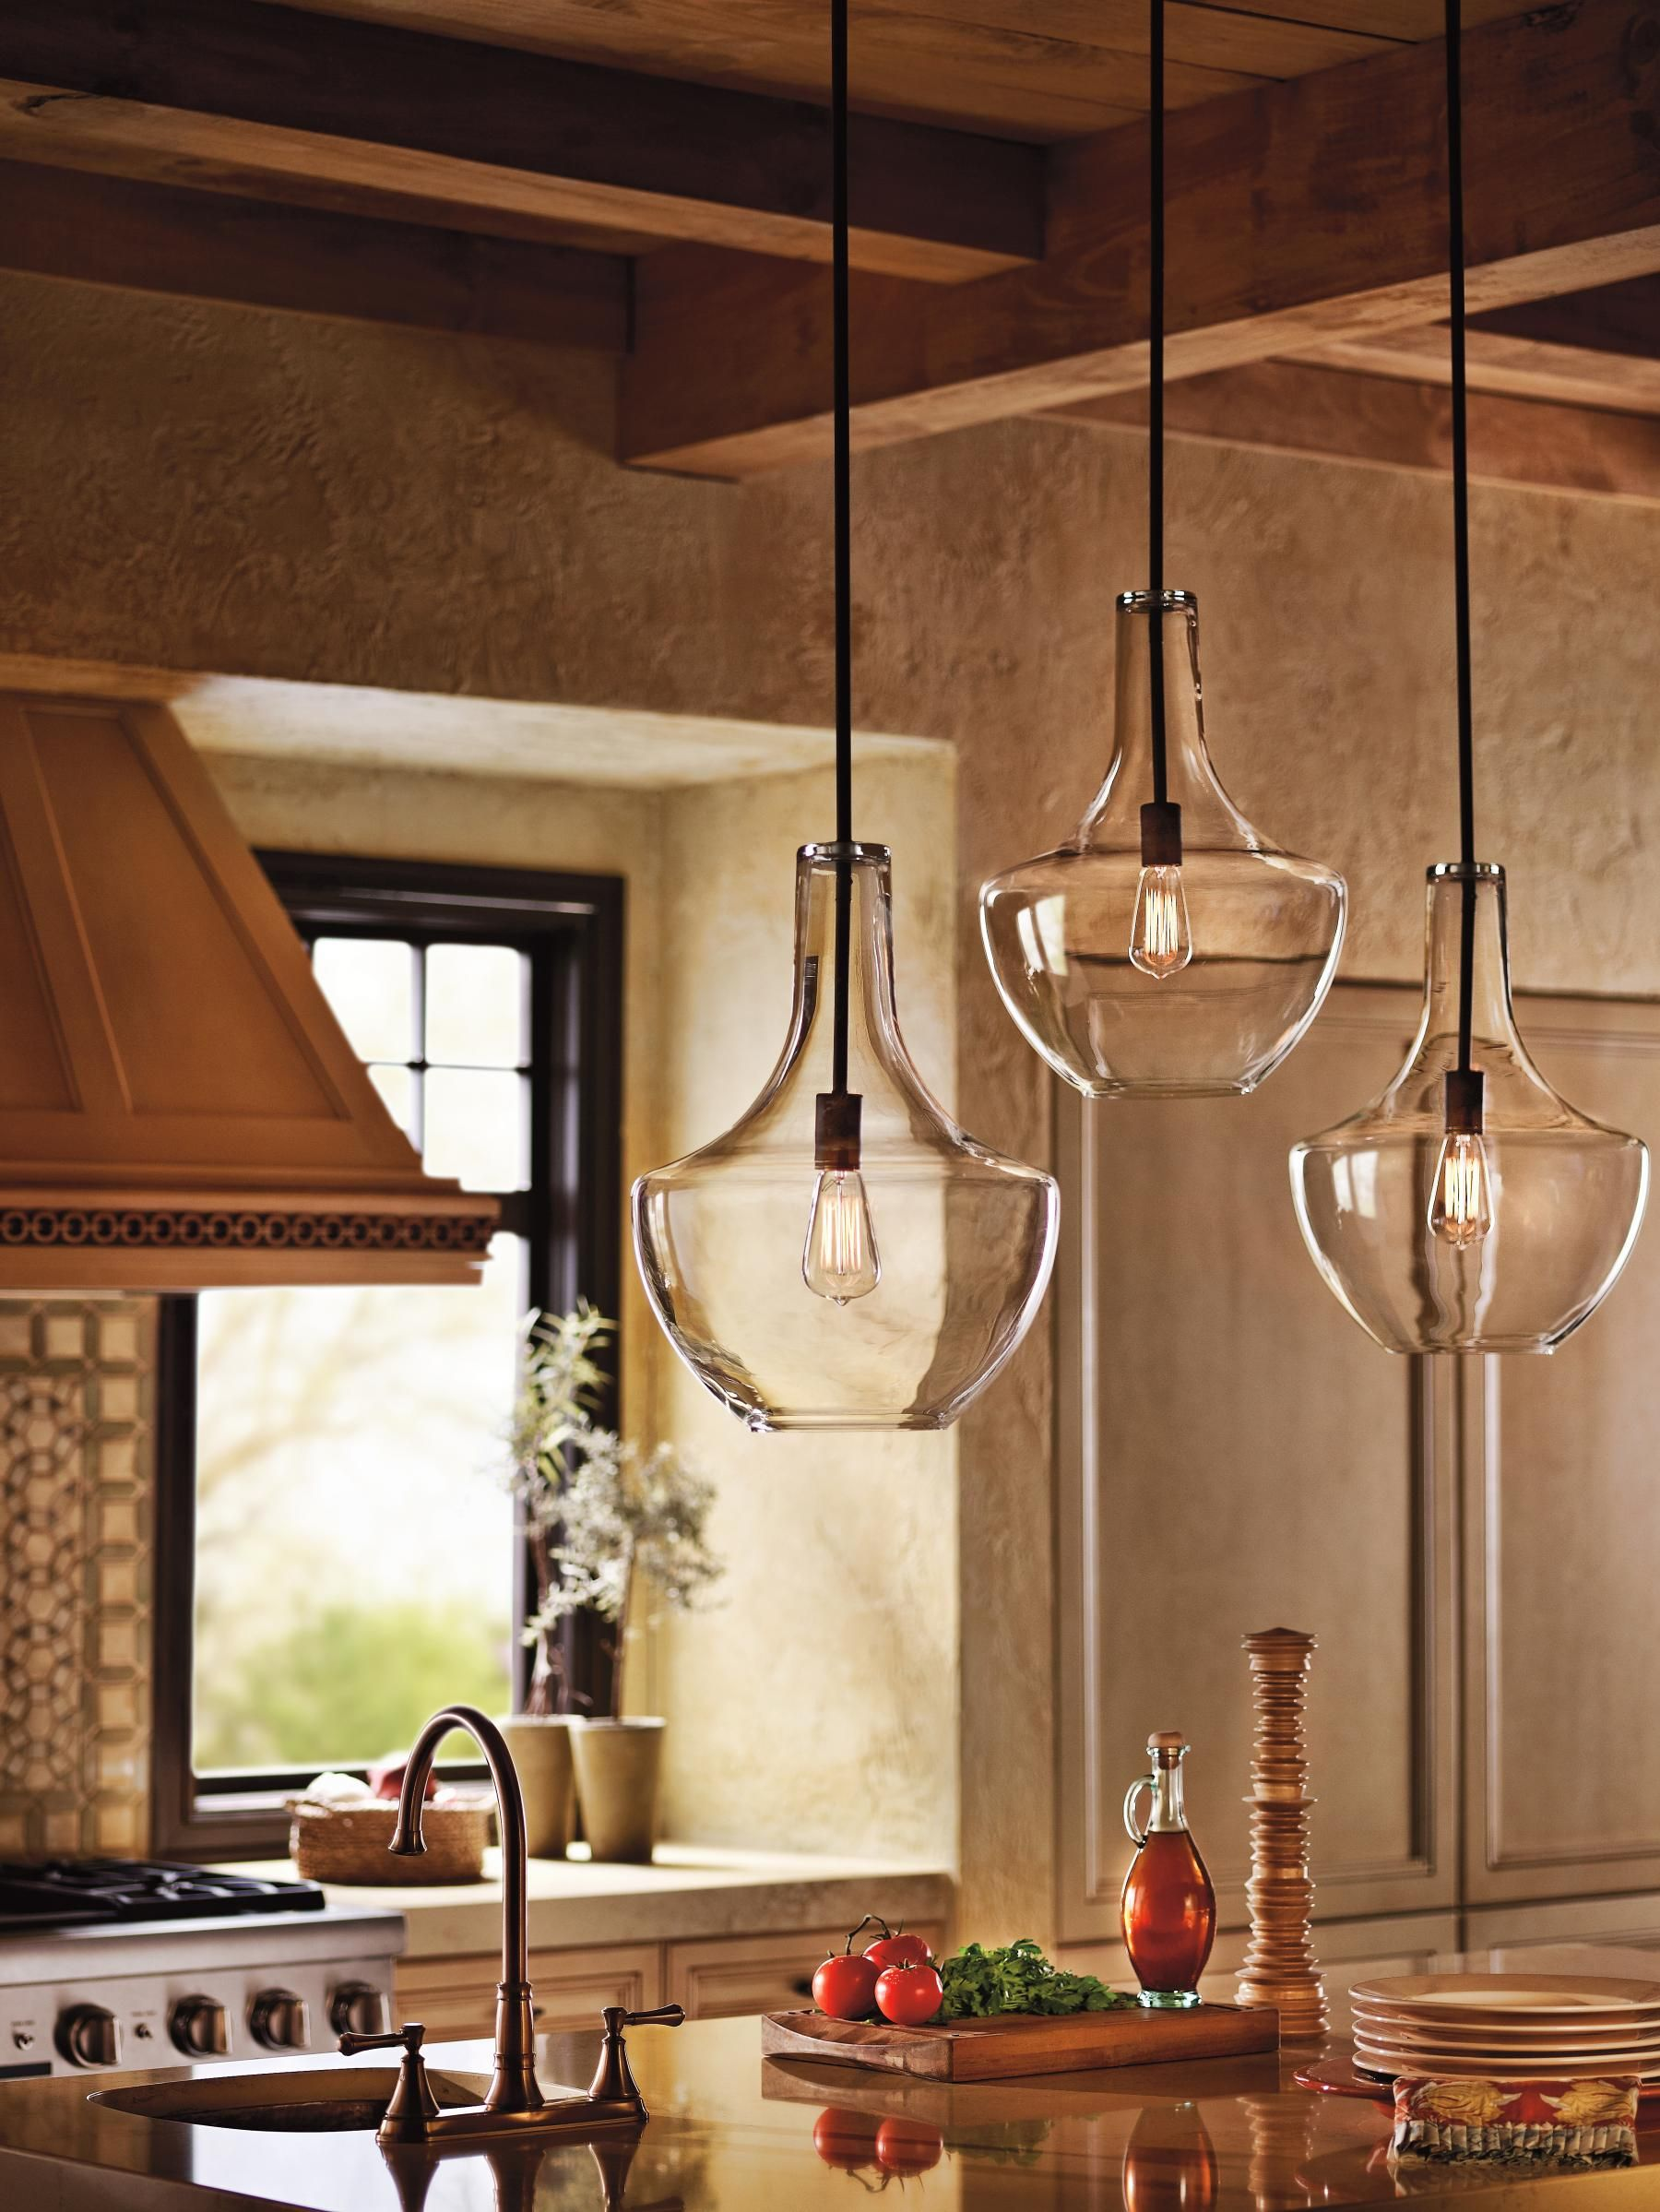 Pendant Lights For Kitchen Islands This Transitional Style Pendant Is A Perfect Option To Light Up